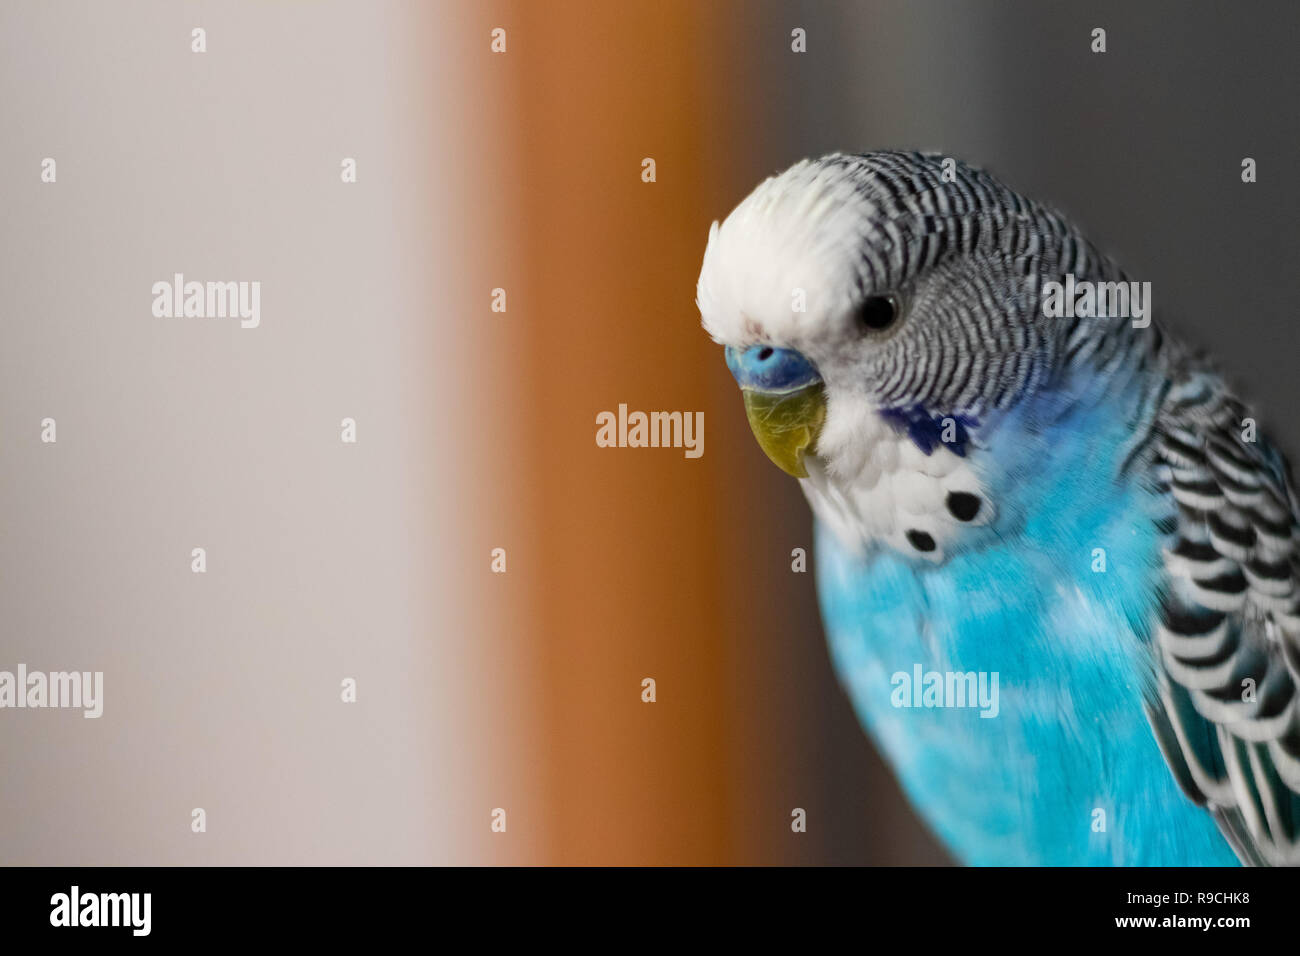 Small Beautiful Blue Parrot In Focus Stock Photo Alamy